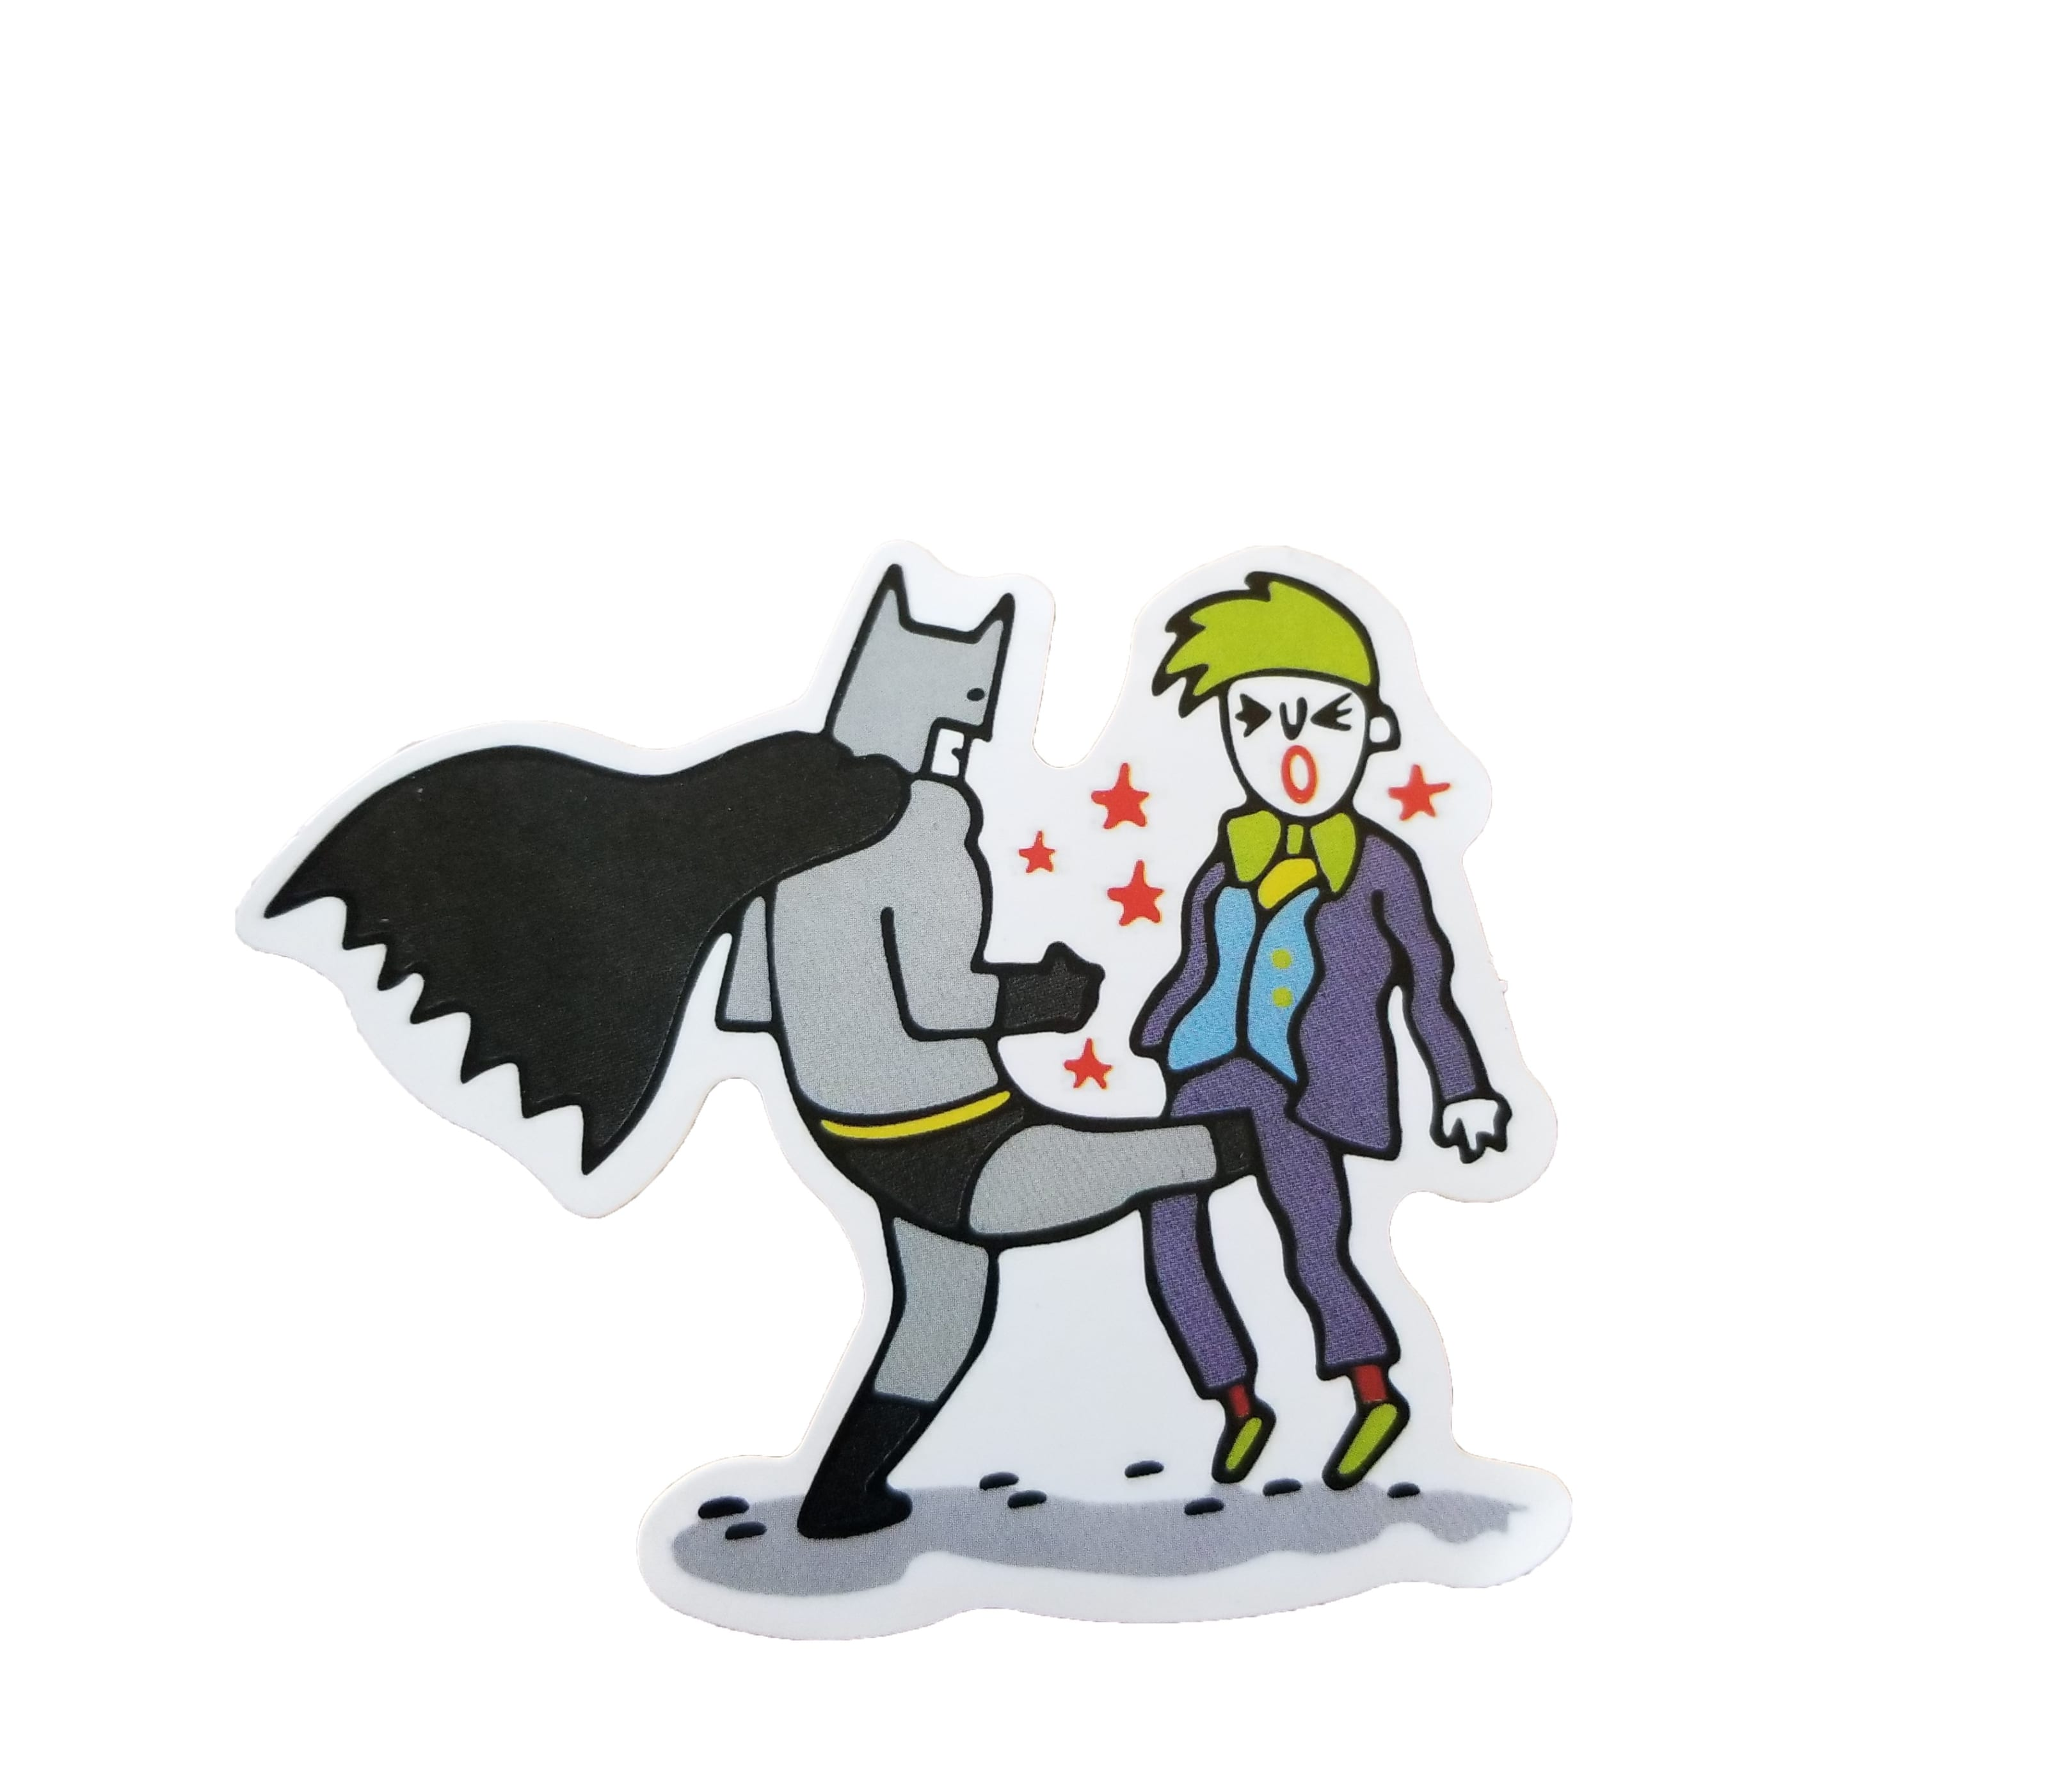 A cartoony sticker of a funny looking batman kicking joker in the testicles with stars surrounding